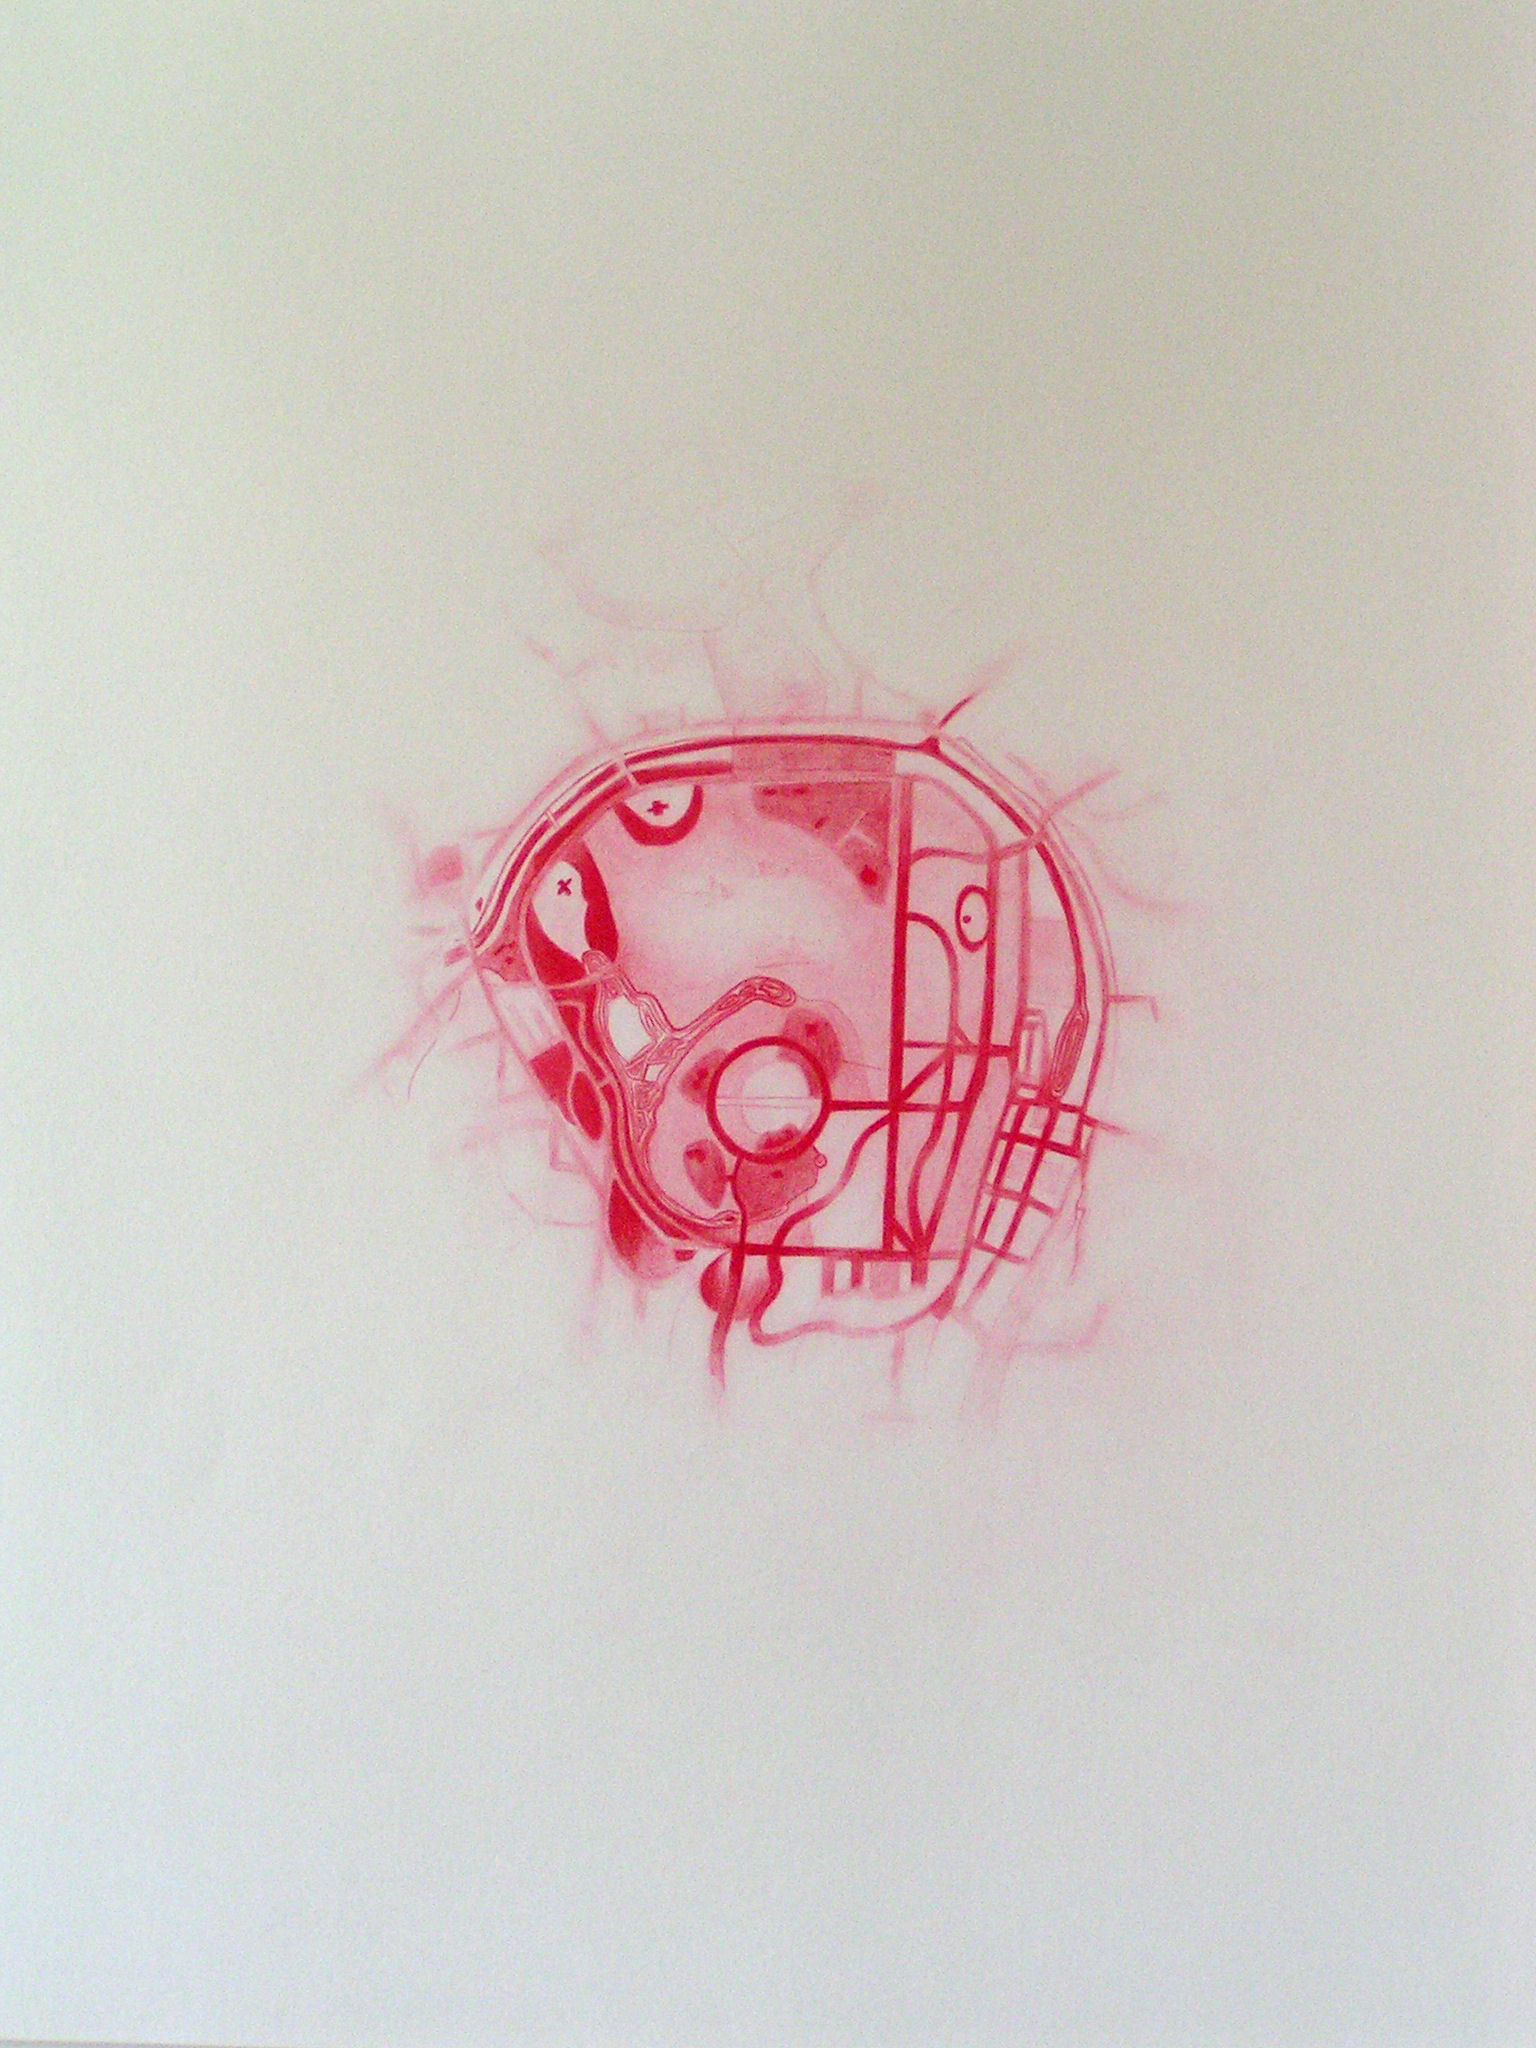 Emma J Williams 'Untitled Red Drawing No.7' 2008 pencil on paper